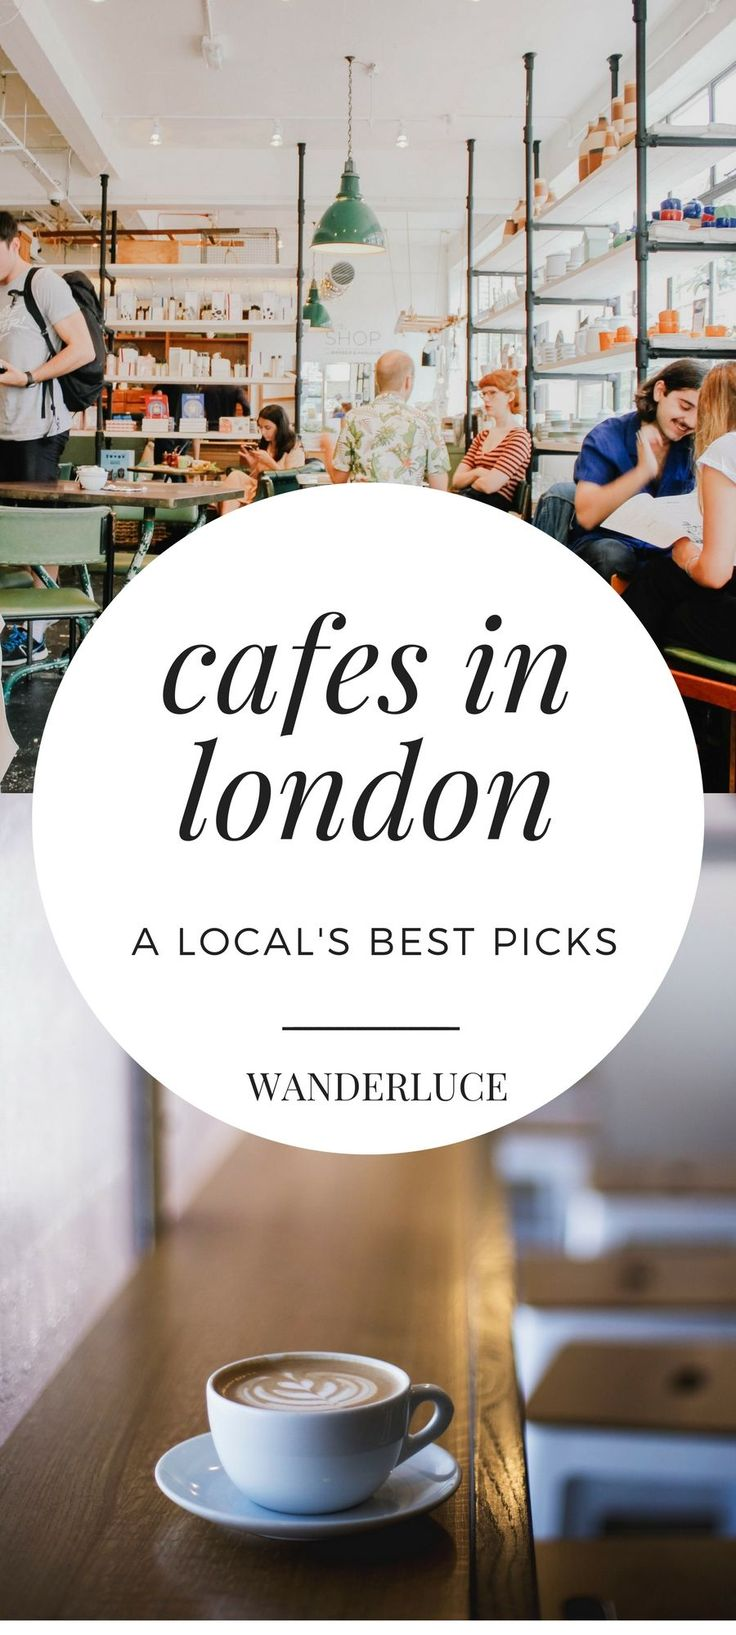 Check out these delicious cafes in London, England as picked by a local!